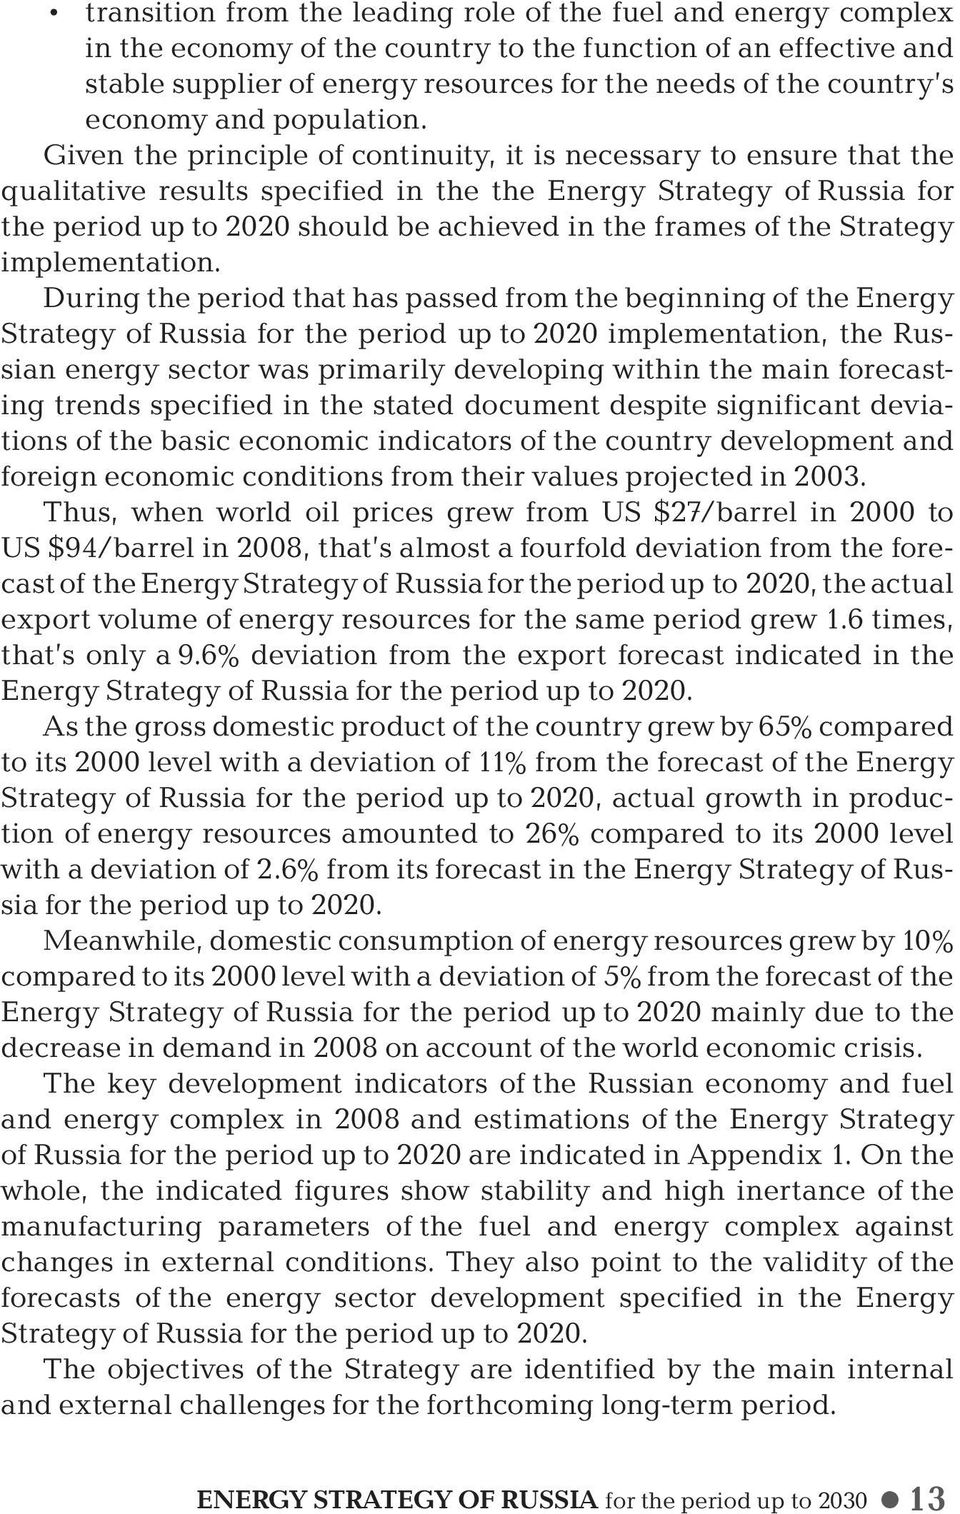 Given the principle of continuity, it is necessary to ensure that the qualitative results specified in the the Energy Strategy of Russia for the period up to 2020 should be achieved in the frames of